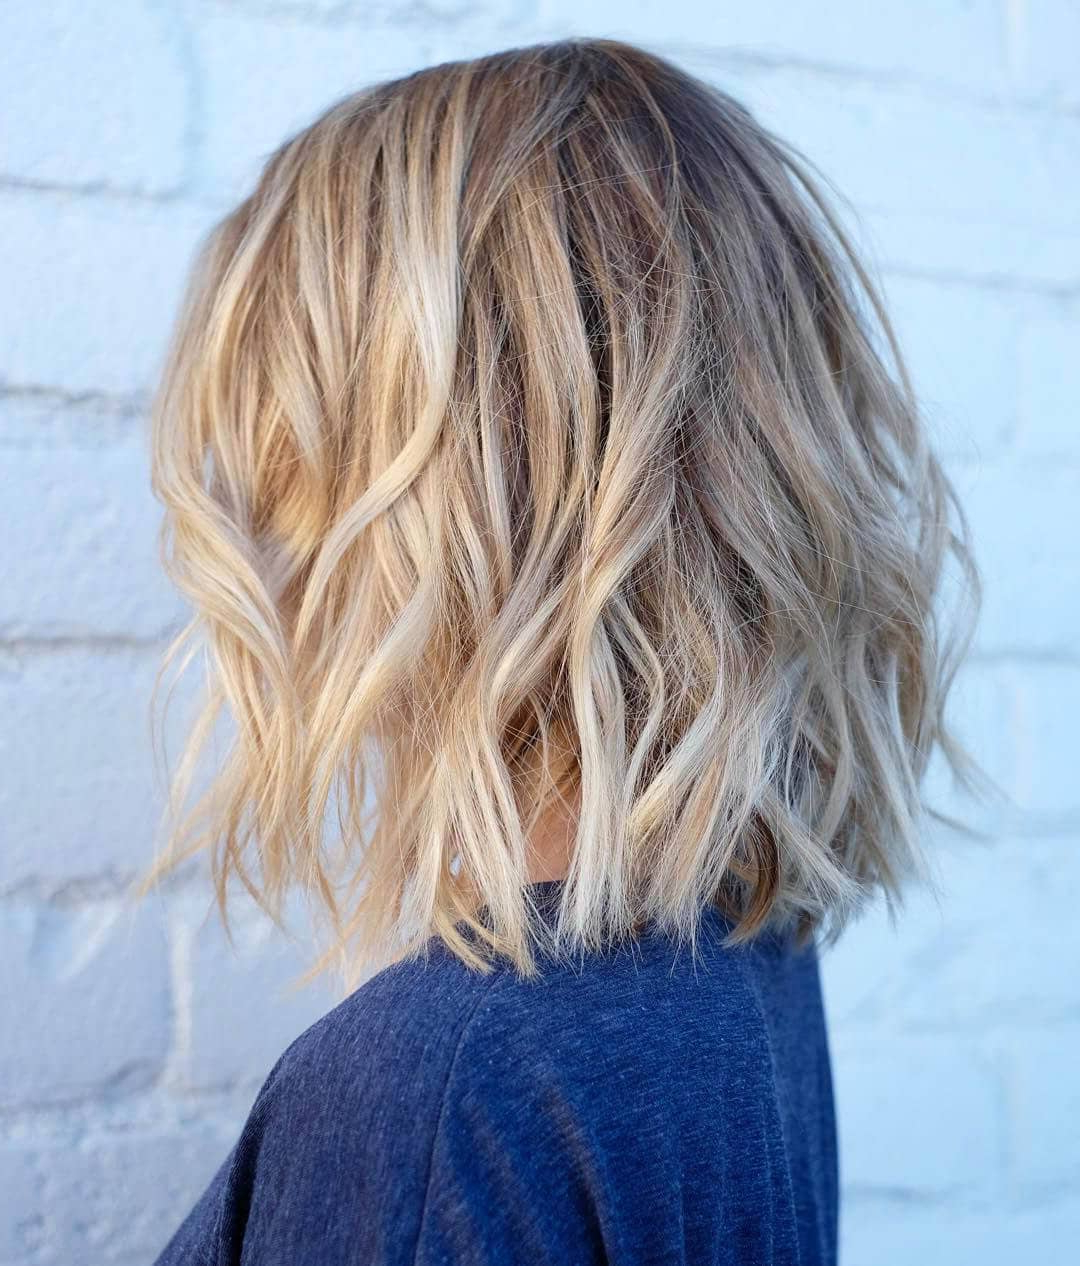 50 Fresh Short Blonde Hair Ideas To Update Your Style In 2018 For Dark Blonde Short Curly Hairstyles (View 15 of 20)